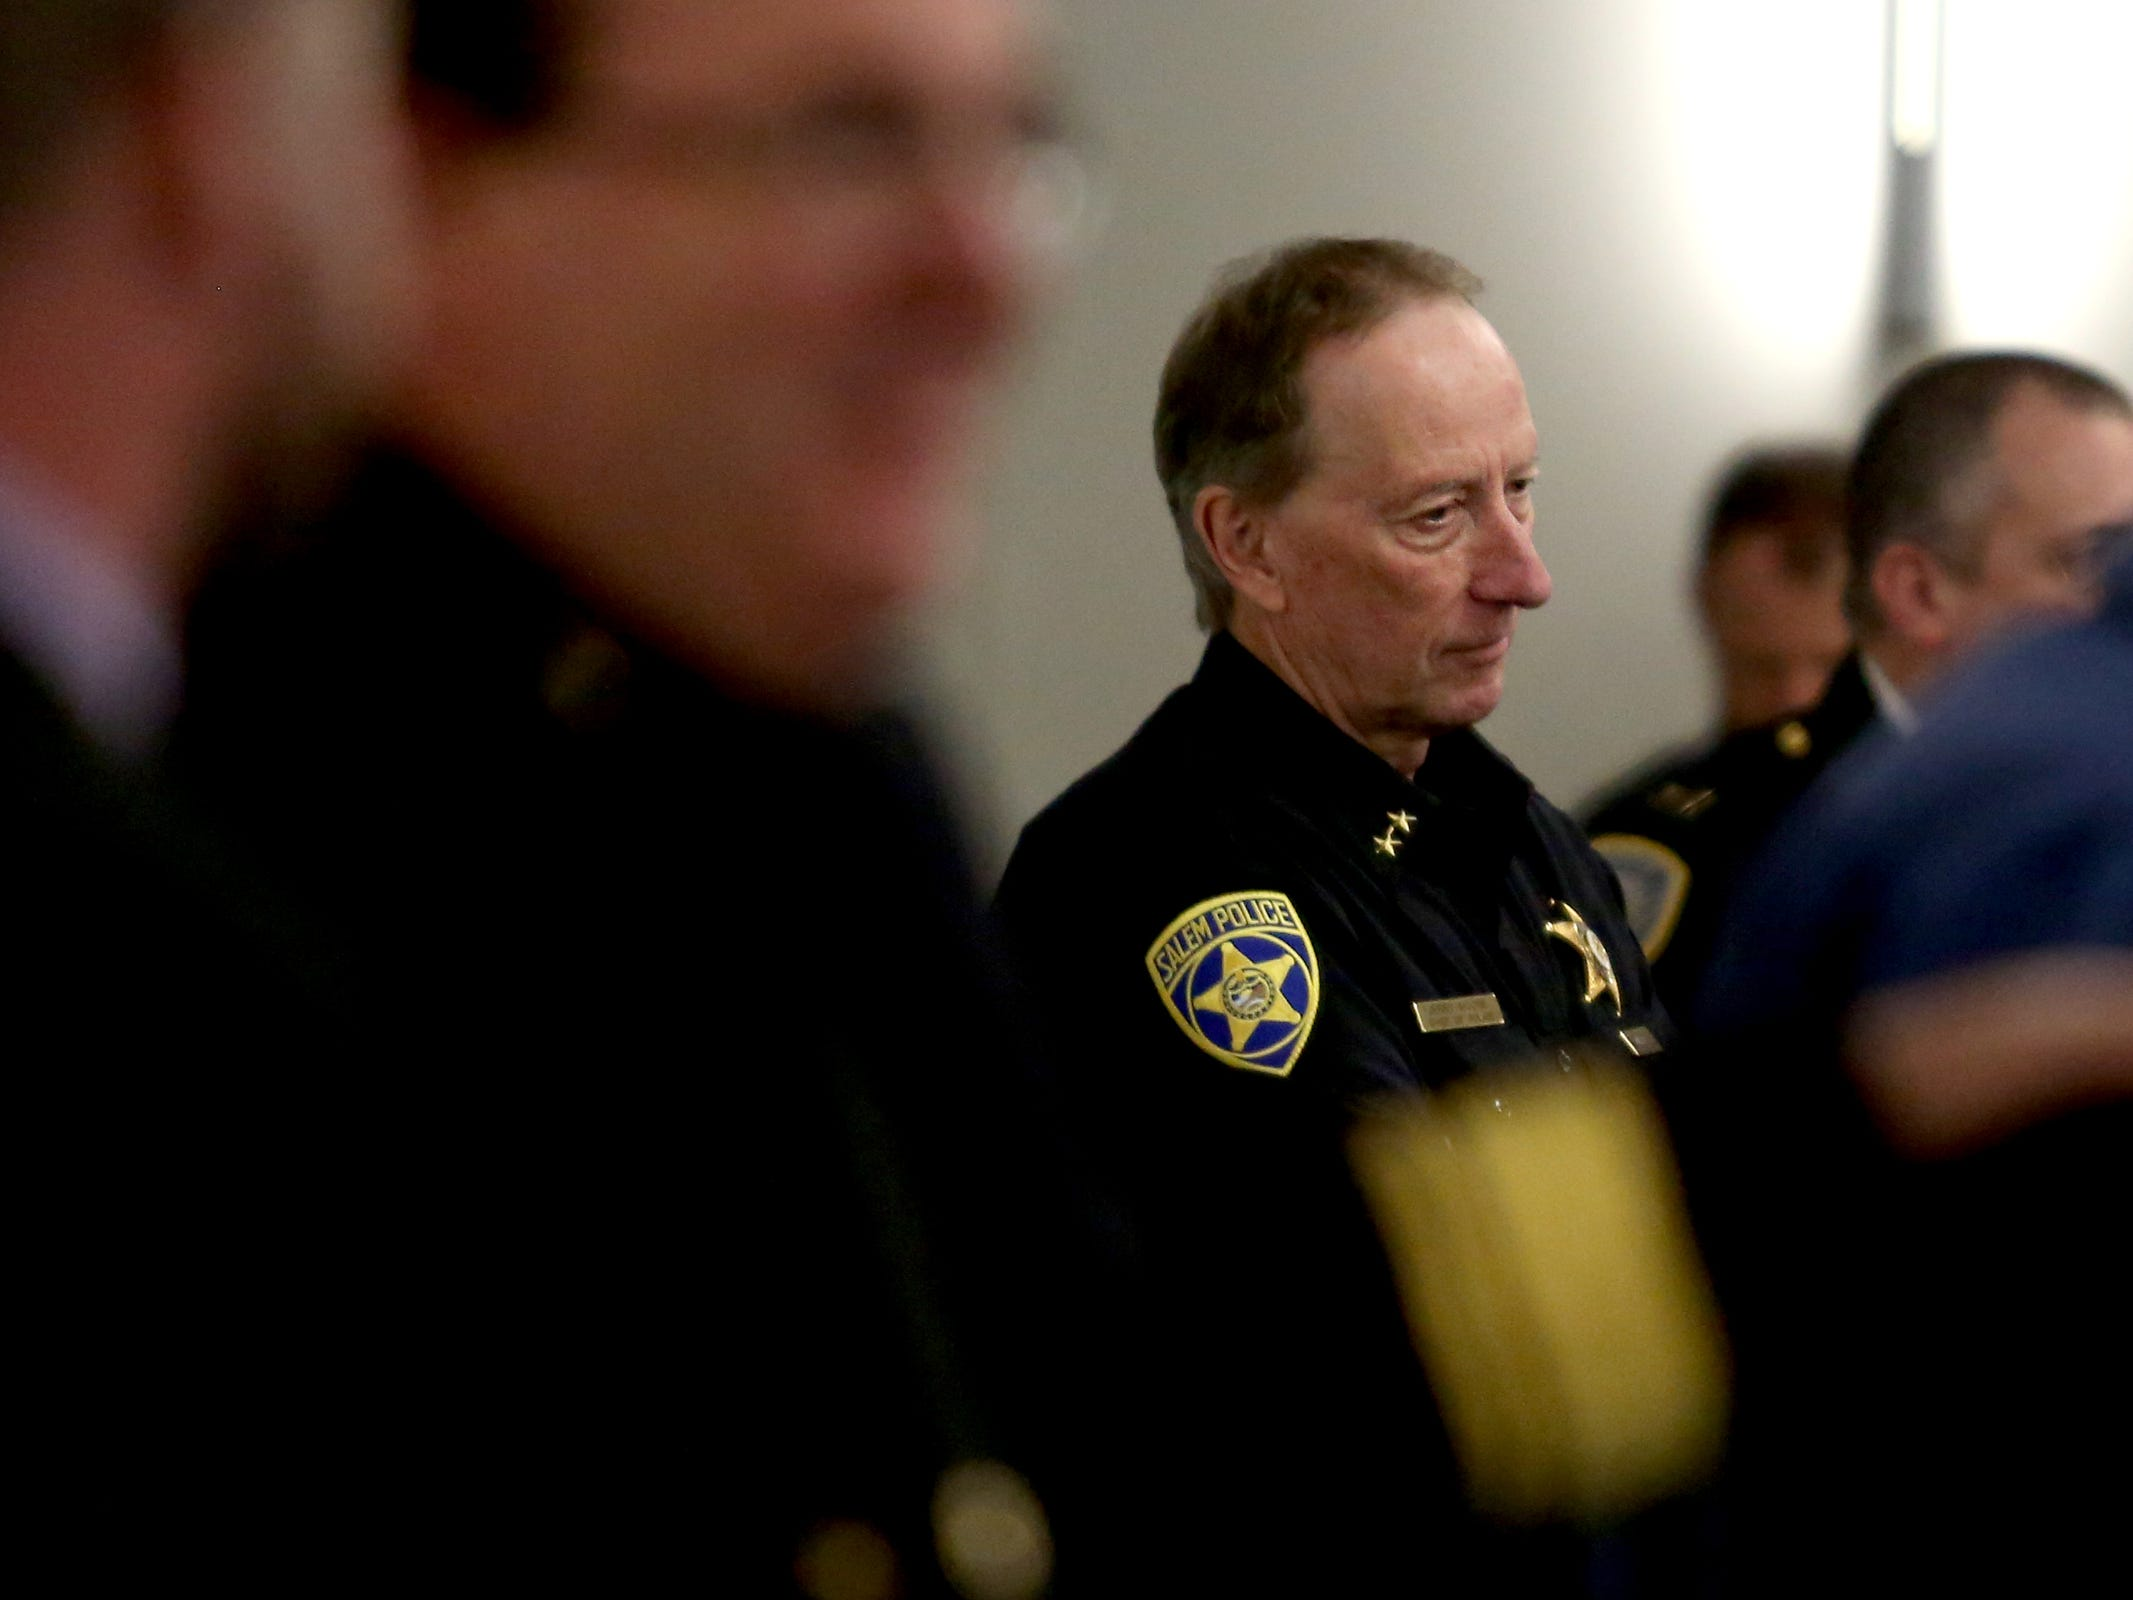 Salem Police Chief Jerry Moore attends a Basic Police Class graduation ceremony at the Department of Public Safety Standards and Training in Salem on March 15, 2019.